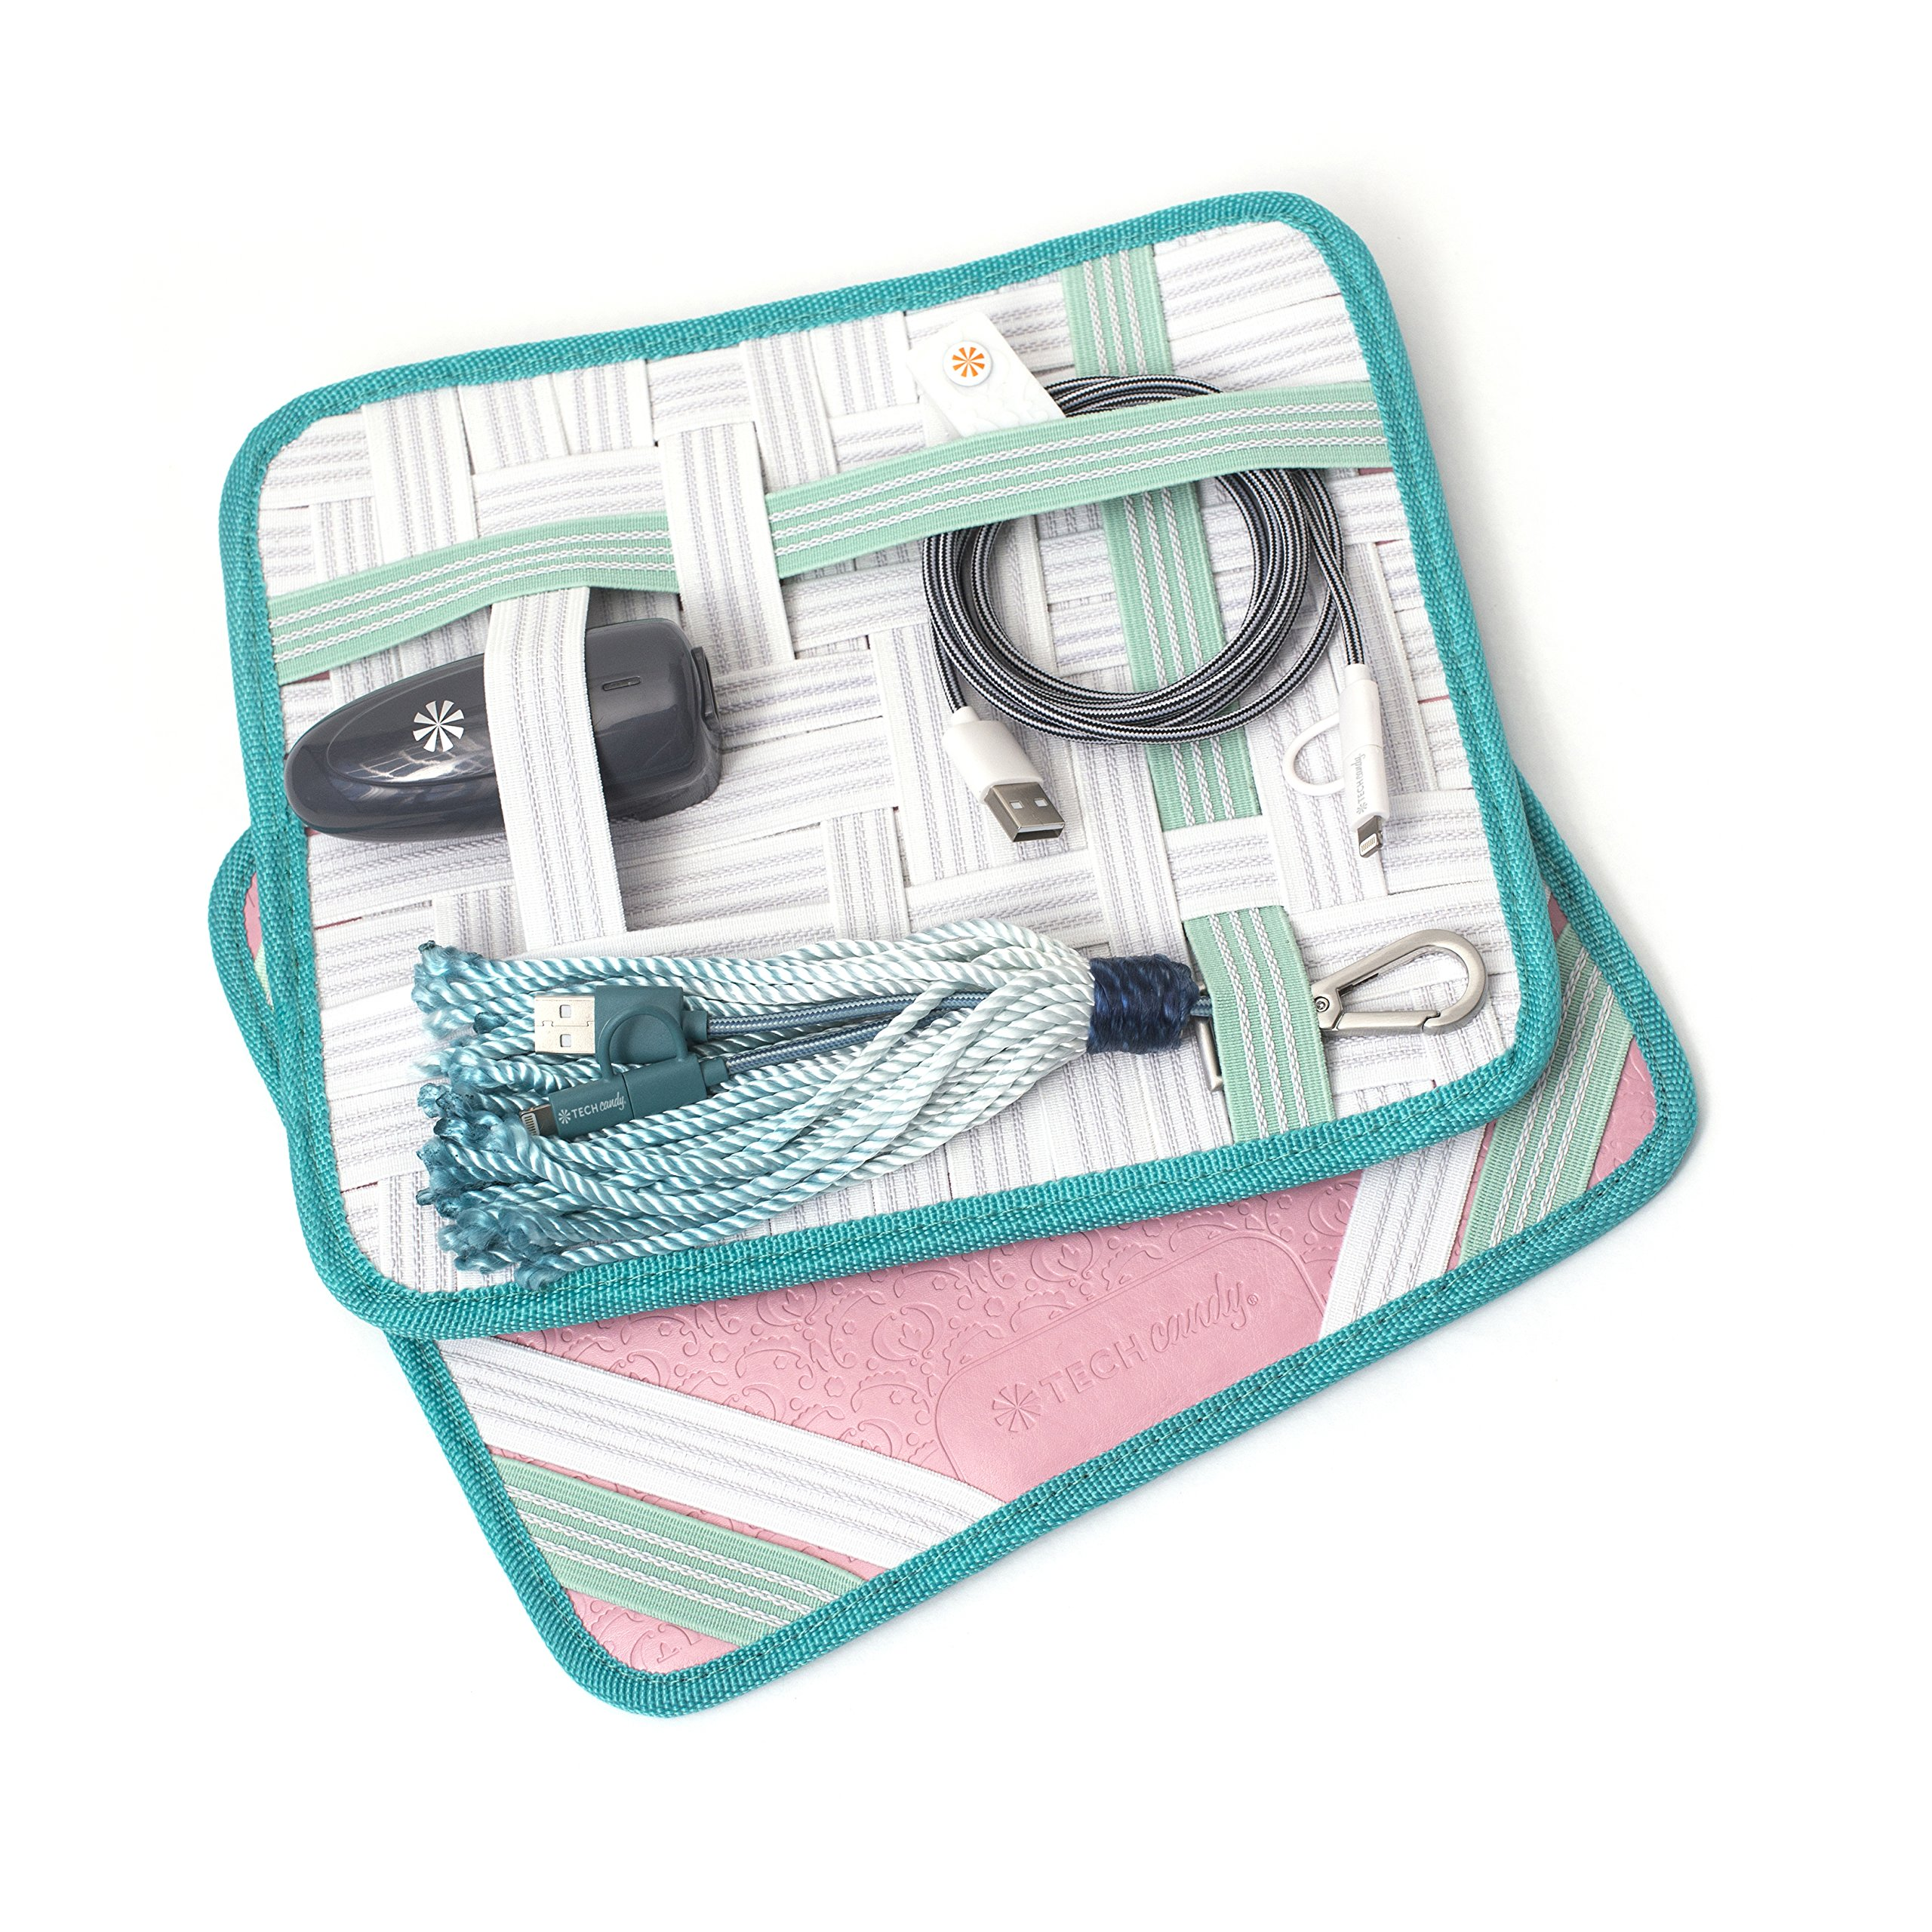 Tech Candy Travel Cases Criss Cross Caddy Rose Pink Mint Organizer Universally Compatible